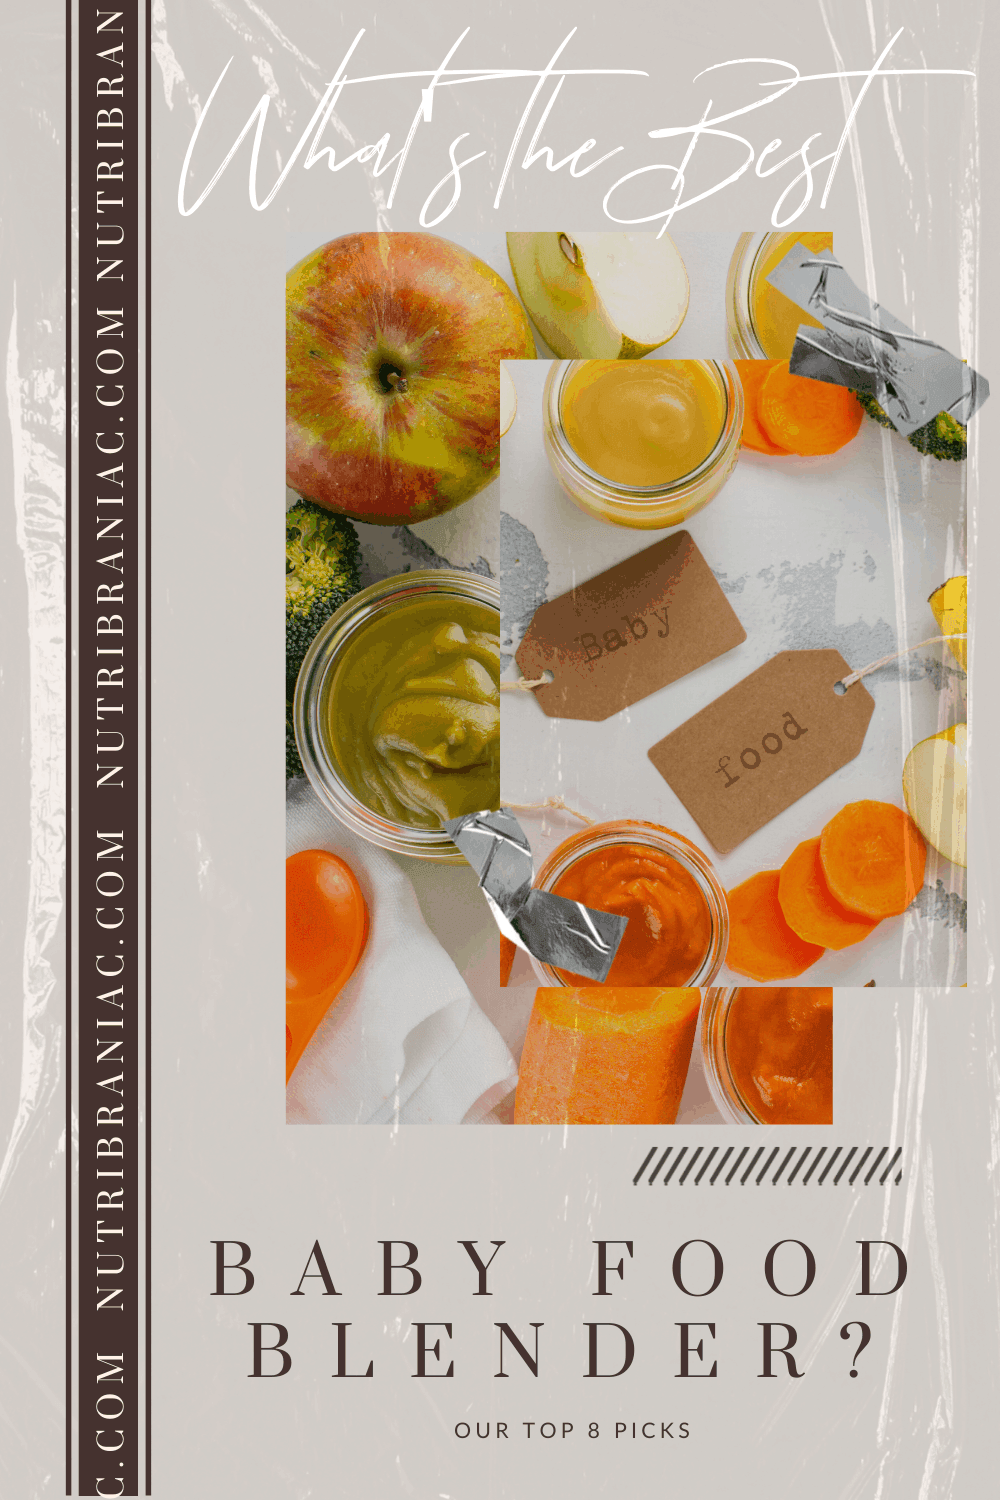 """Image of a fruits and vegetables surrounding jars of baby food with text overlay, """"Our Favorite Baby Food Blenders"""""""